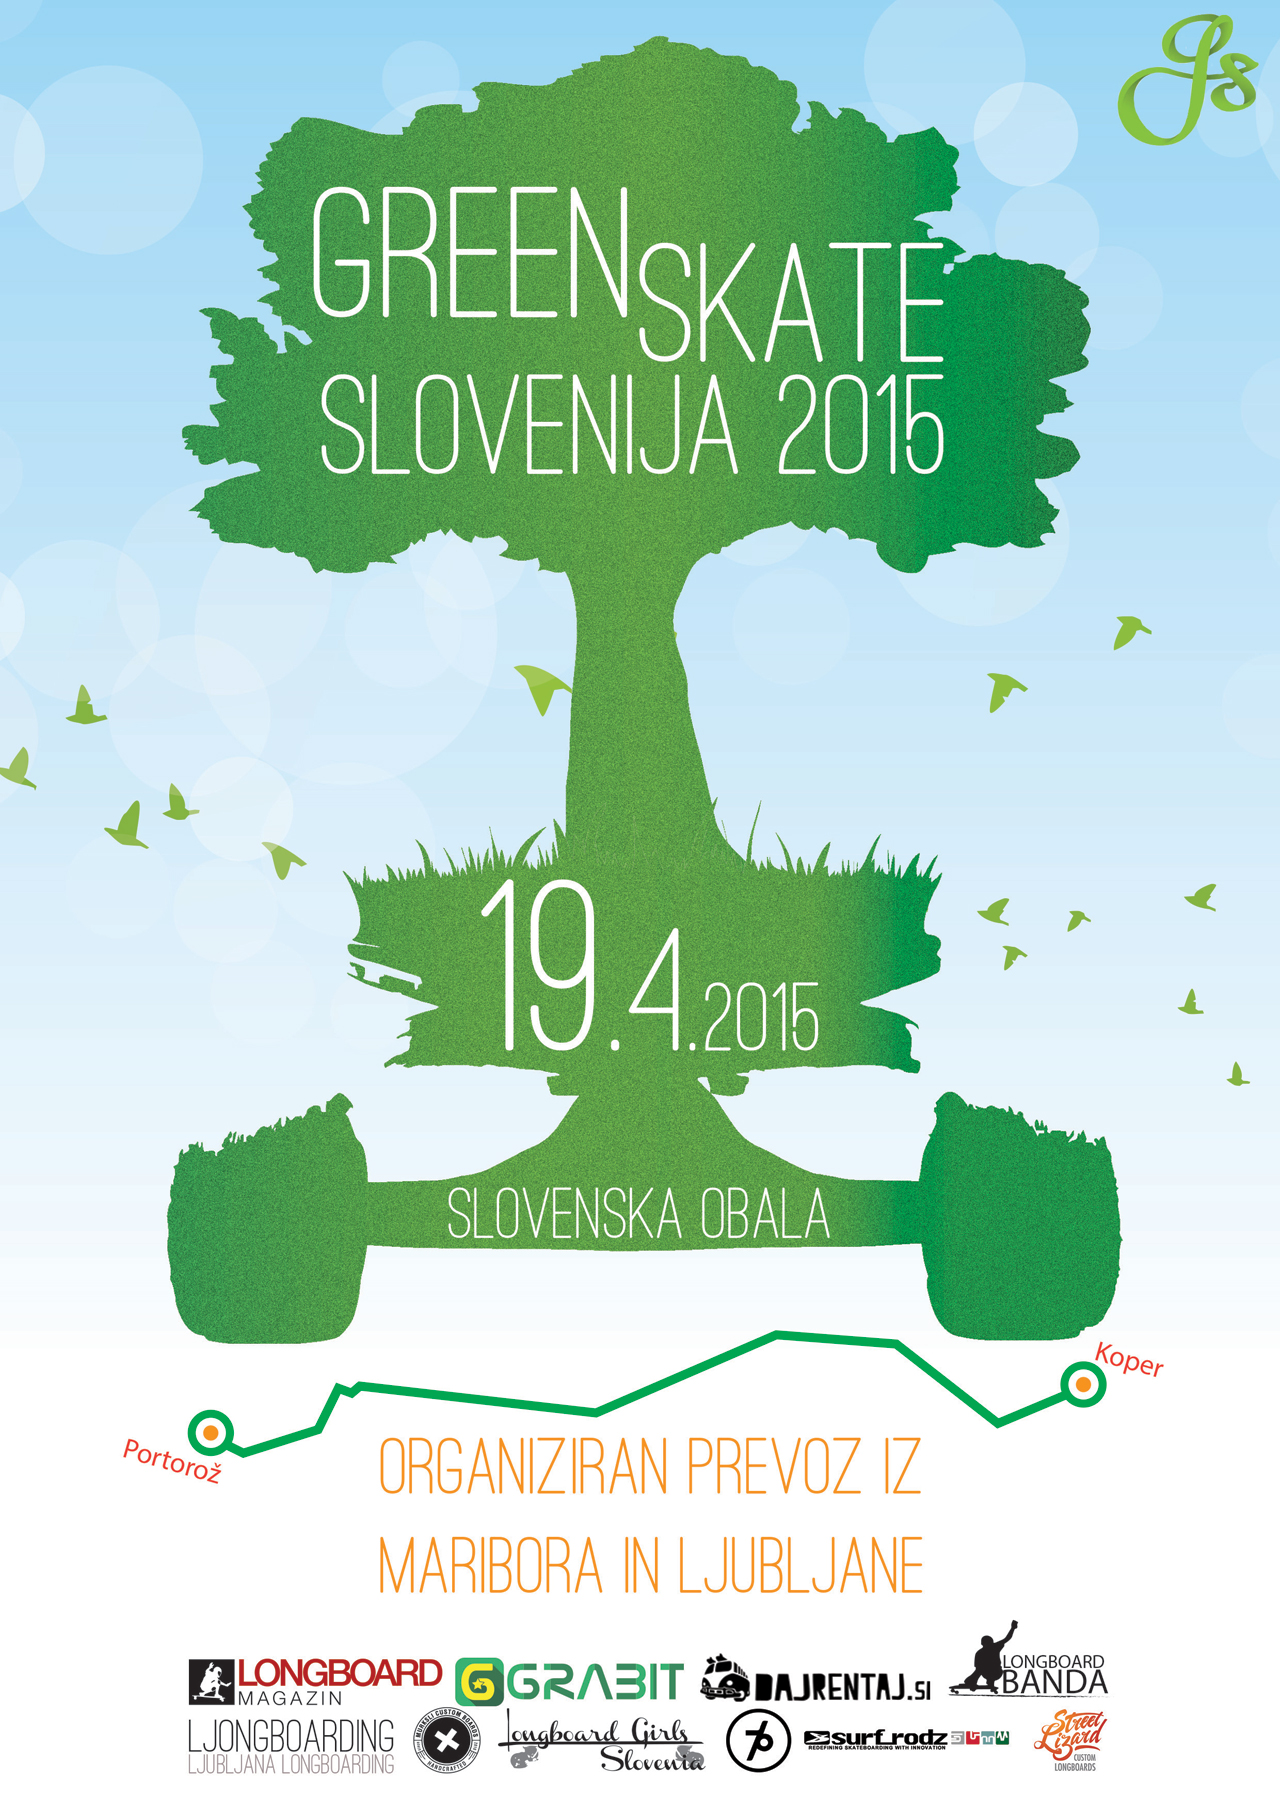 GreenSkate Slovenija 2015 flyer